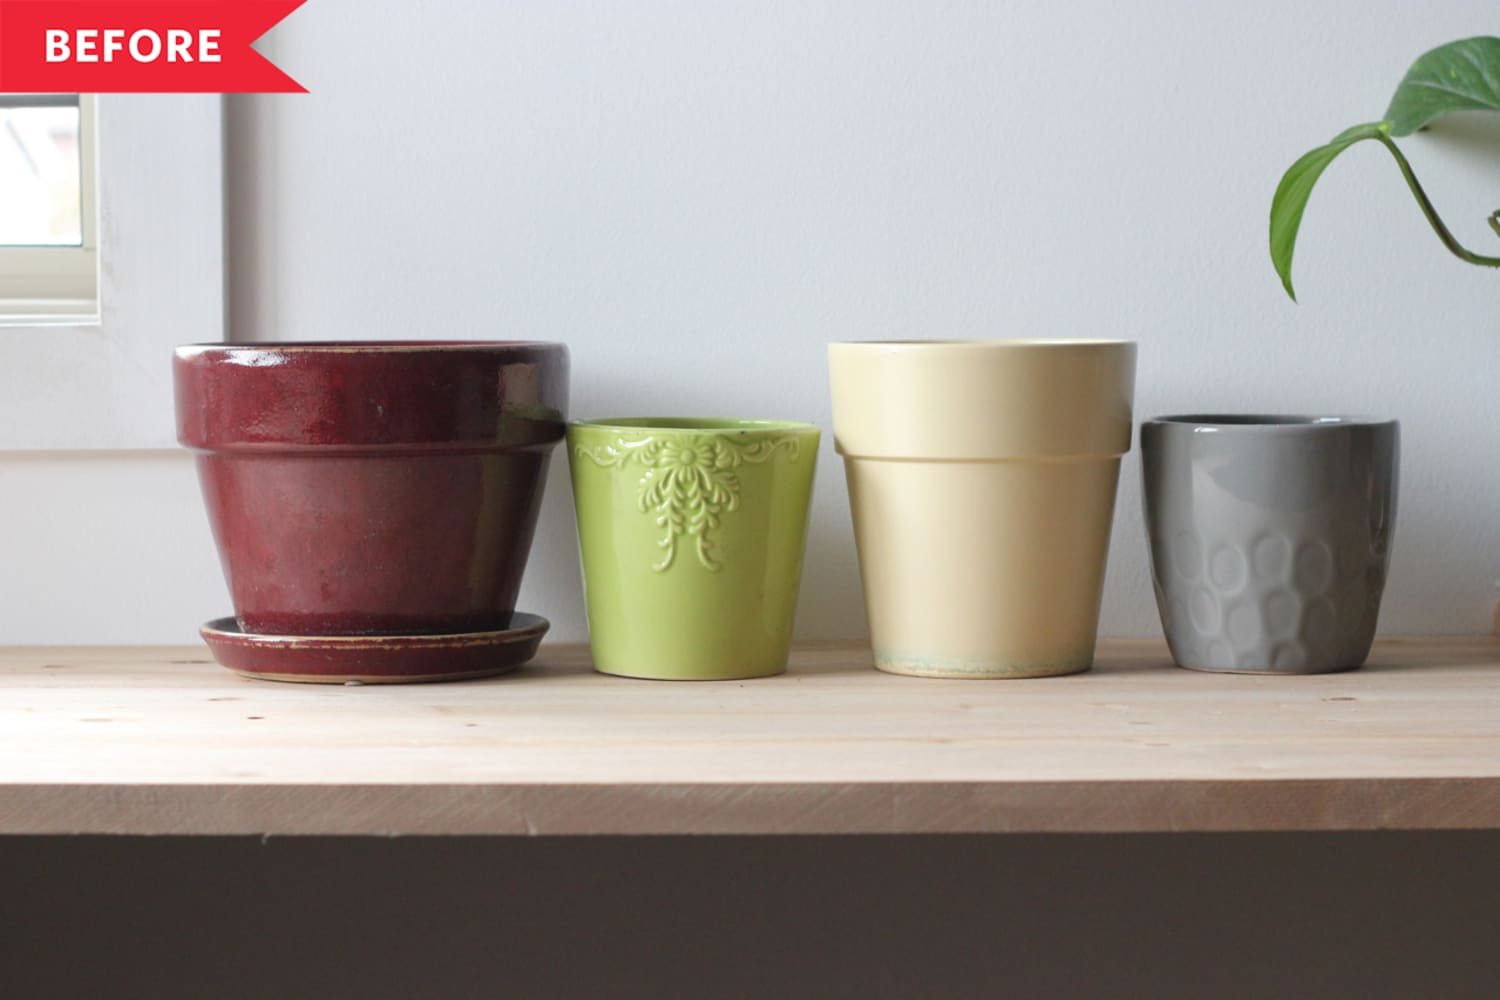 Before and After: A Genius Hack for Making Thrifted Planters Look Way More Expensive